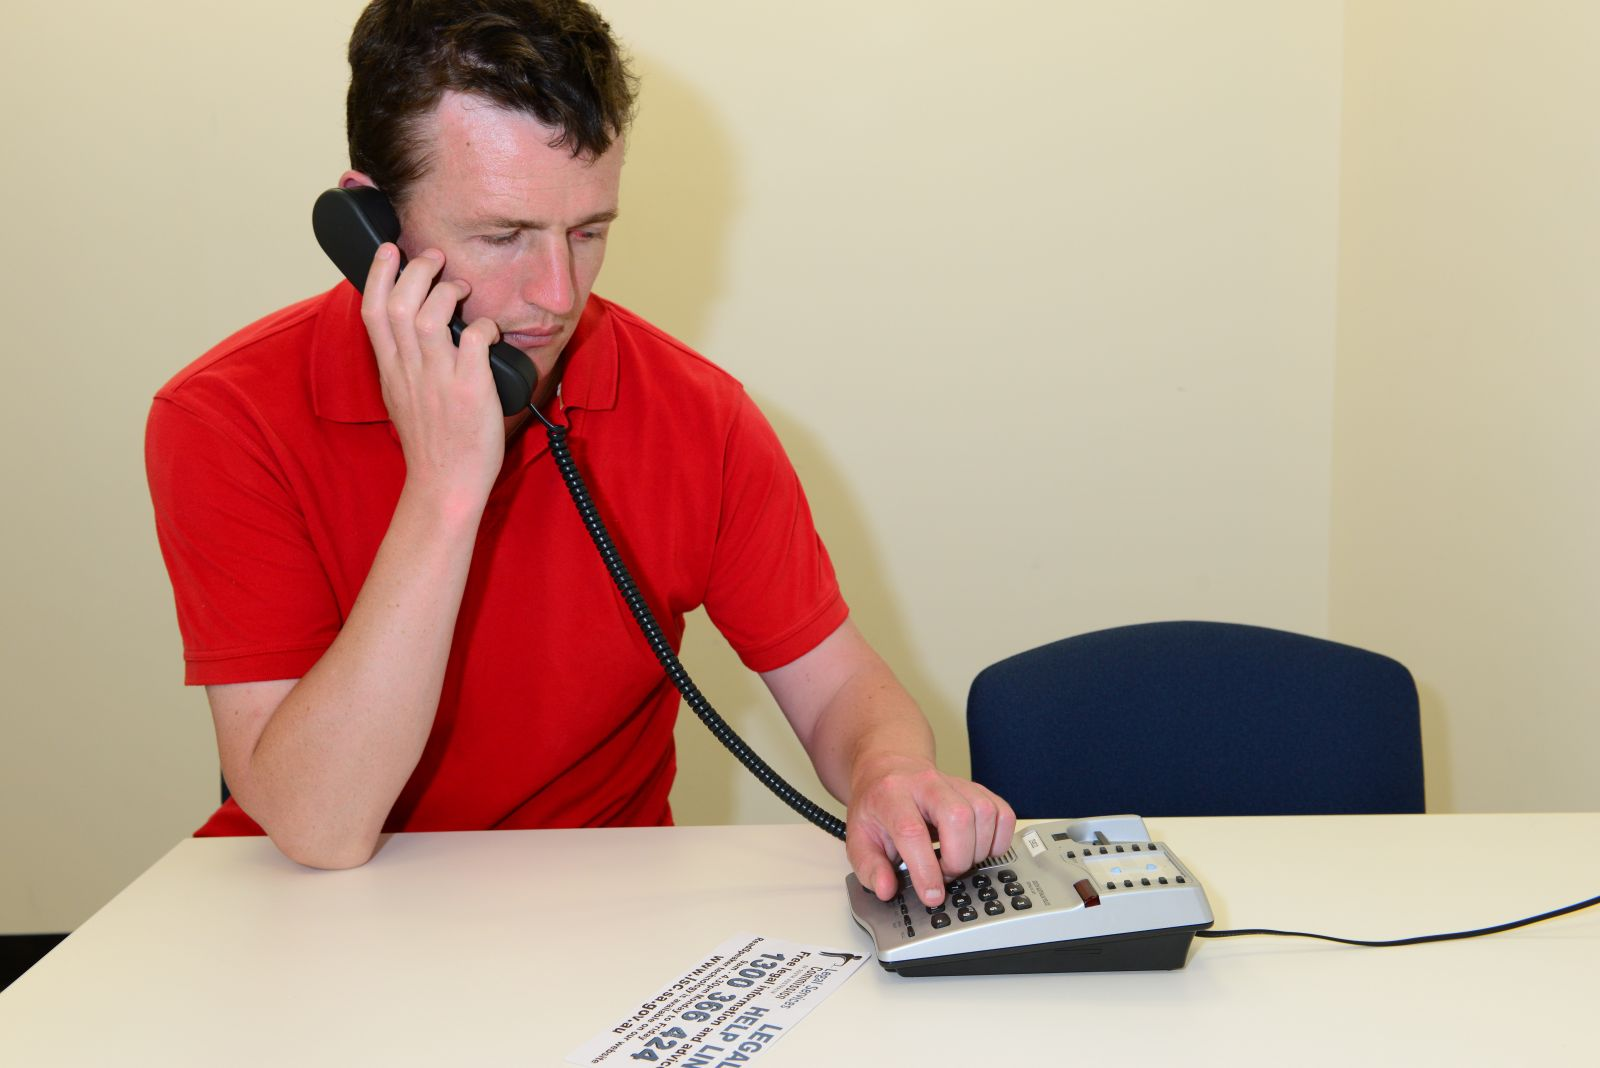 A photograph of a person under arrest making a phone call to get legal advice.